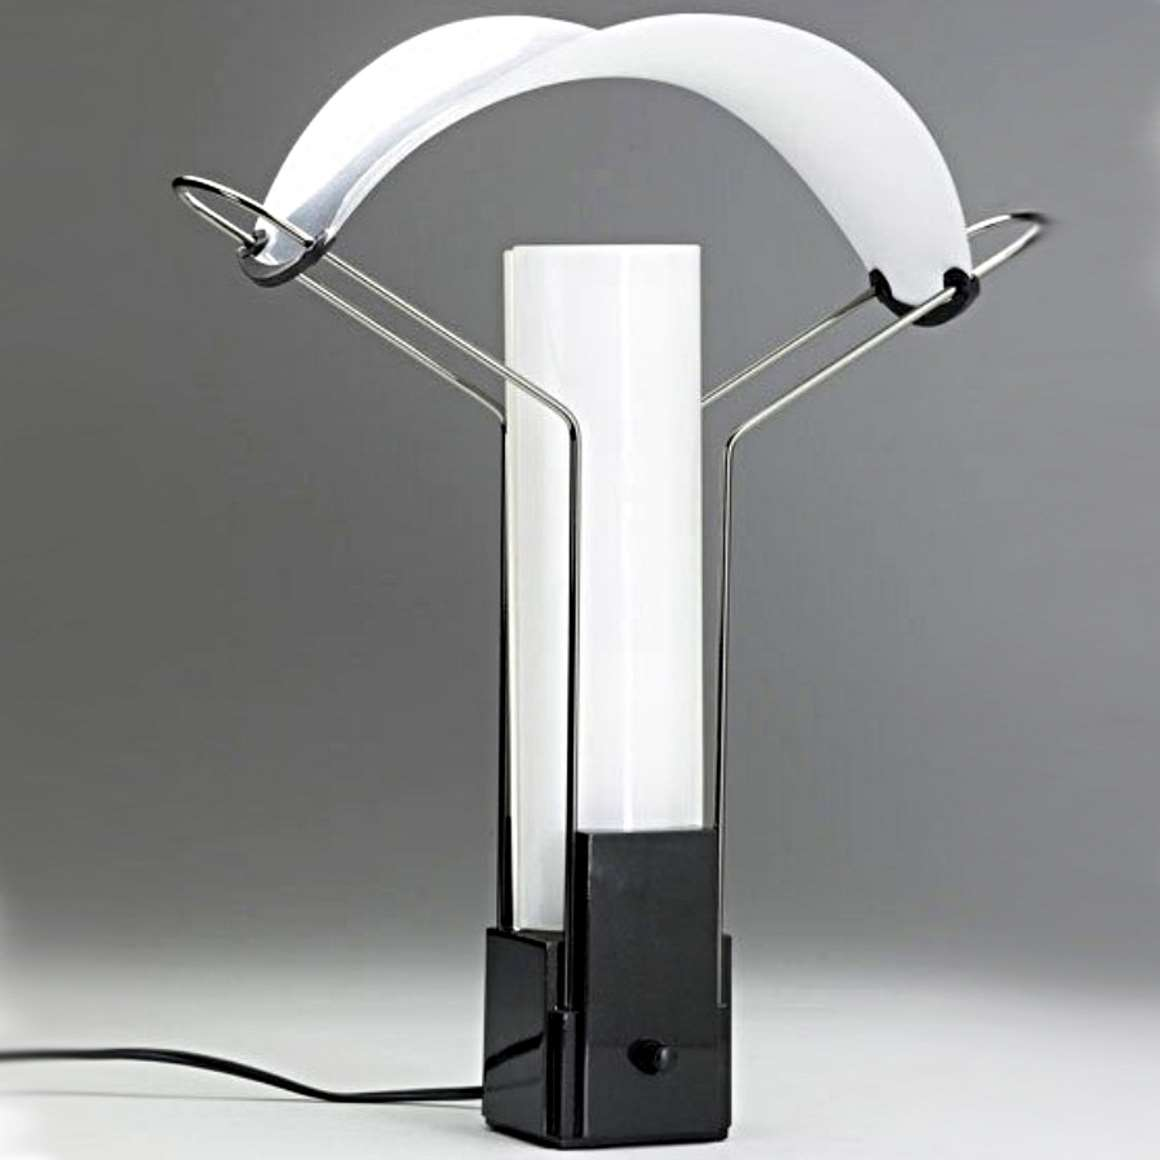 Arteluce Palio Table Lamp - White version